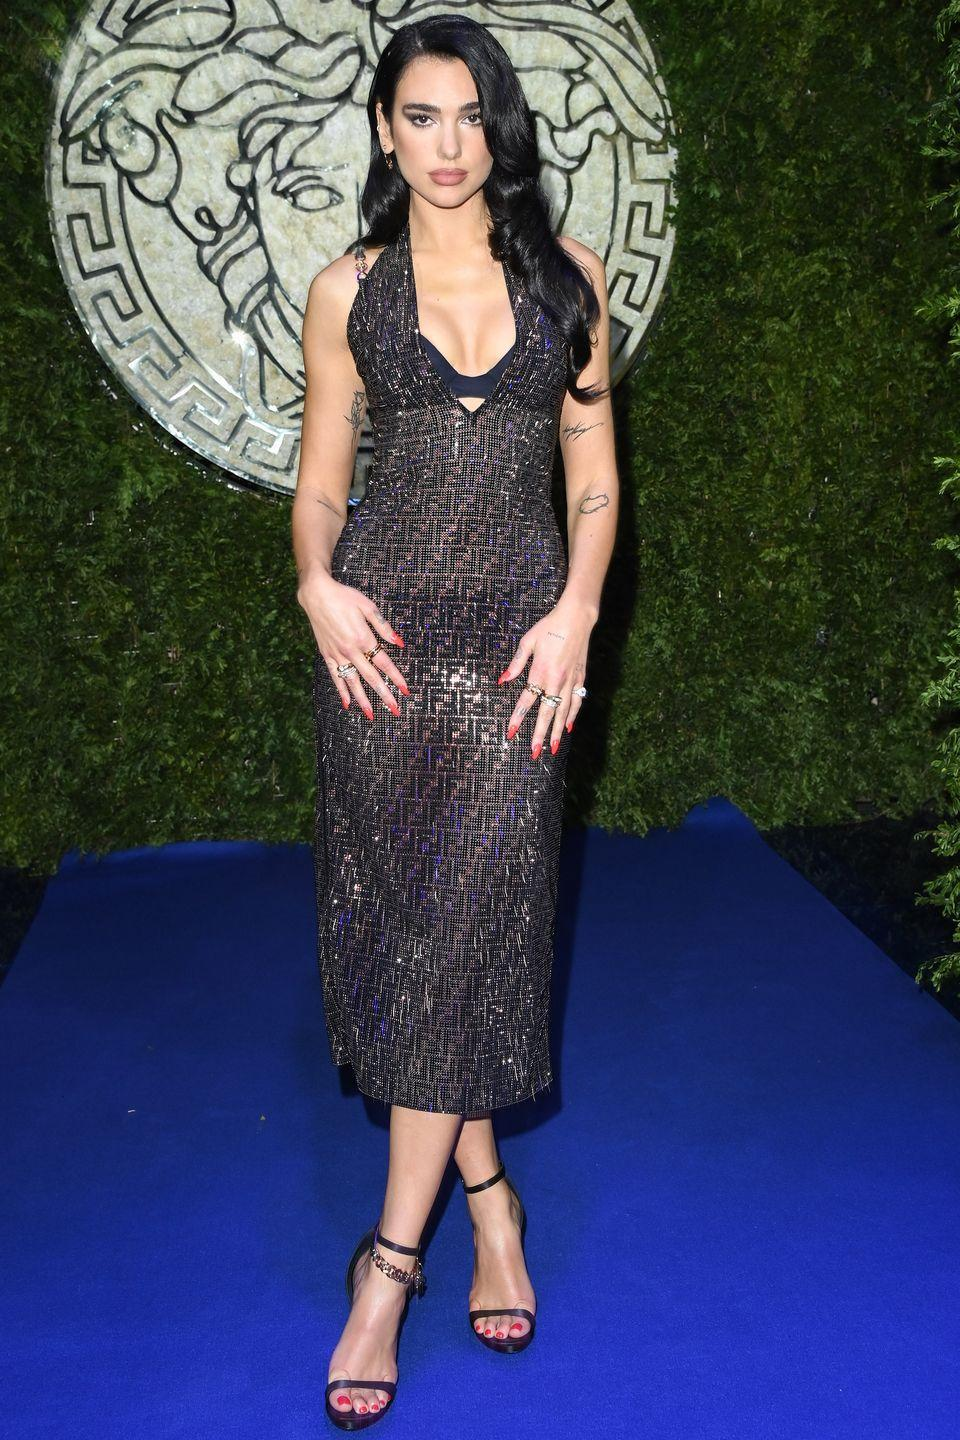 """<p><strong>26 September </strong></p><p>Dua Lipa wore a sheer black dress and strappy heels to attend the special <a href=""""https://www.harpersbazaar.com/uk/fashion/shows-trends/a37749500/versace-fendi-fendace-show/"""" rel=""""nofollow noopener"""" target=""""_blank"""" data-ylk=""""slk:Versace x Fendi collaboration show"""" class=""""link rapid-noclick-resp"""">Versace x Fendi collaboration show</a>. </p>"""